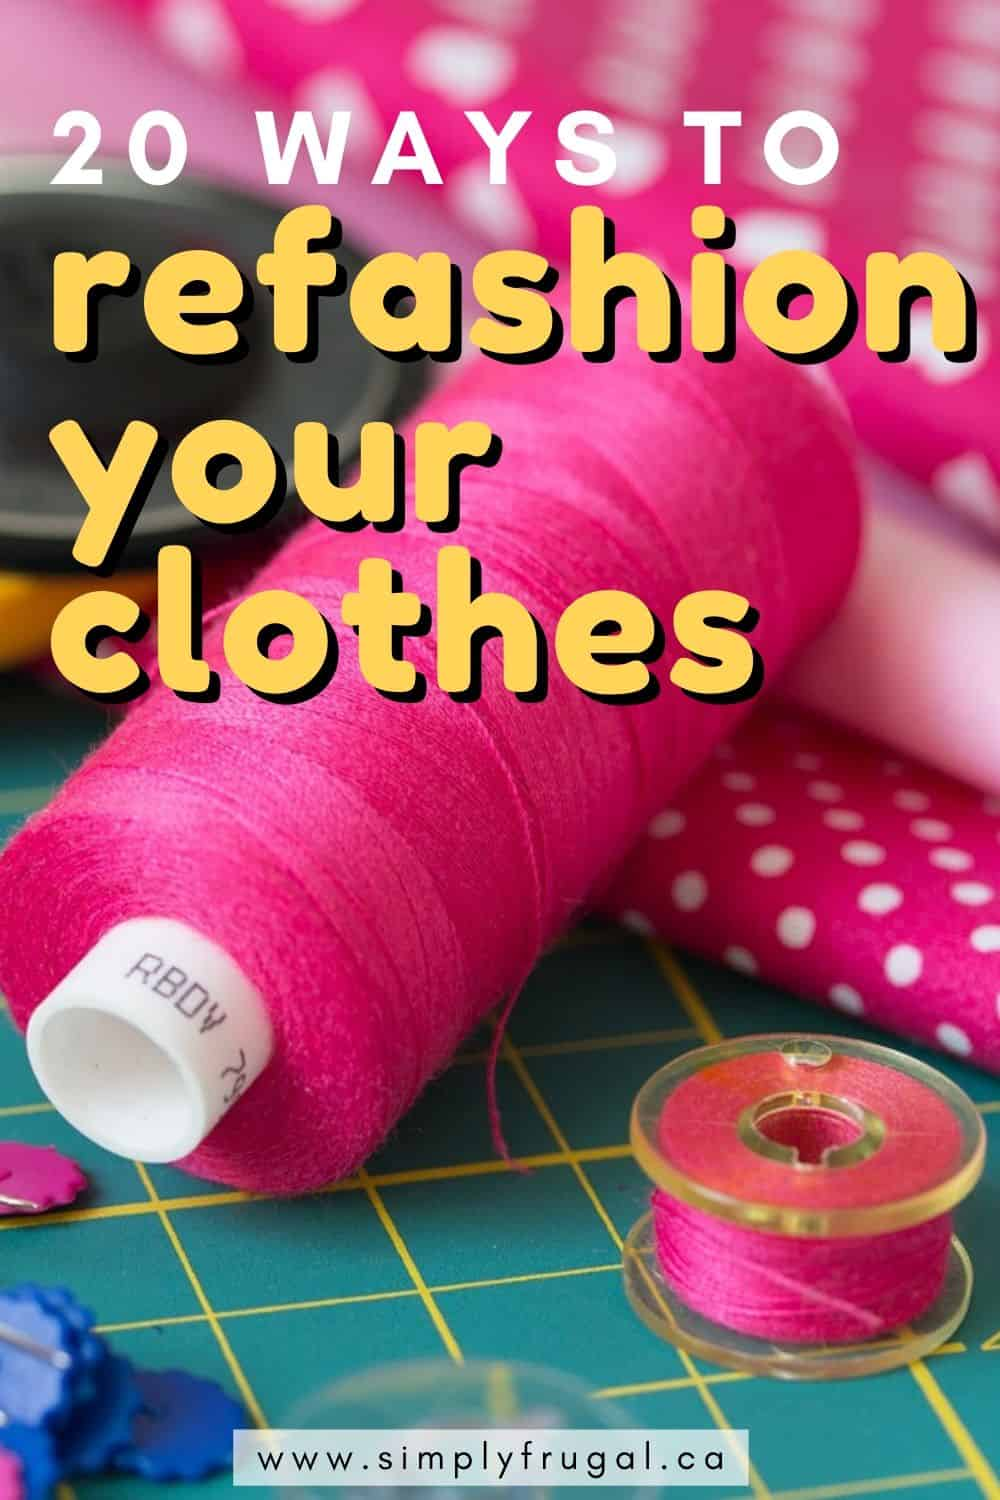 20 Ways to Refashion or upcycle your old Clothes. Forget buying brand new clothes! Check out these DIY sewing ideas for refashioning clothes you may already own. You'll be sure to find a tutorial for a new dress, shirt or whatever you fancy! #upcycle #refashion #sewing